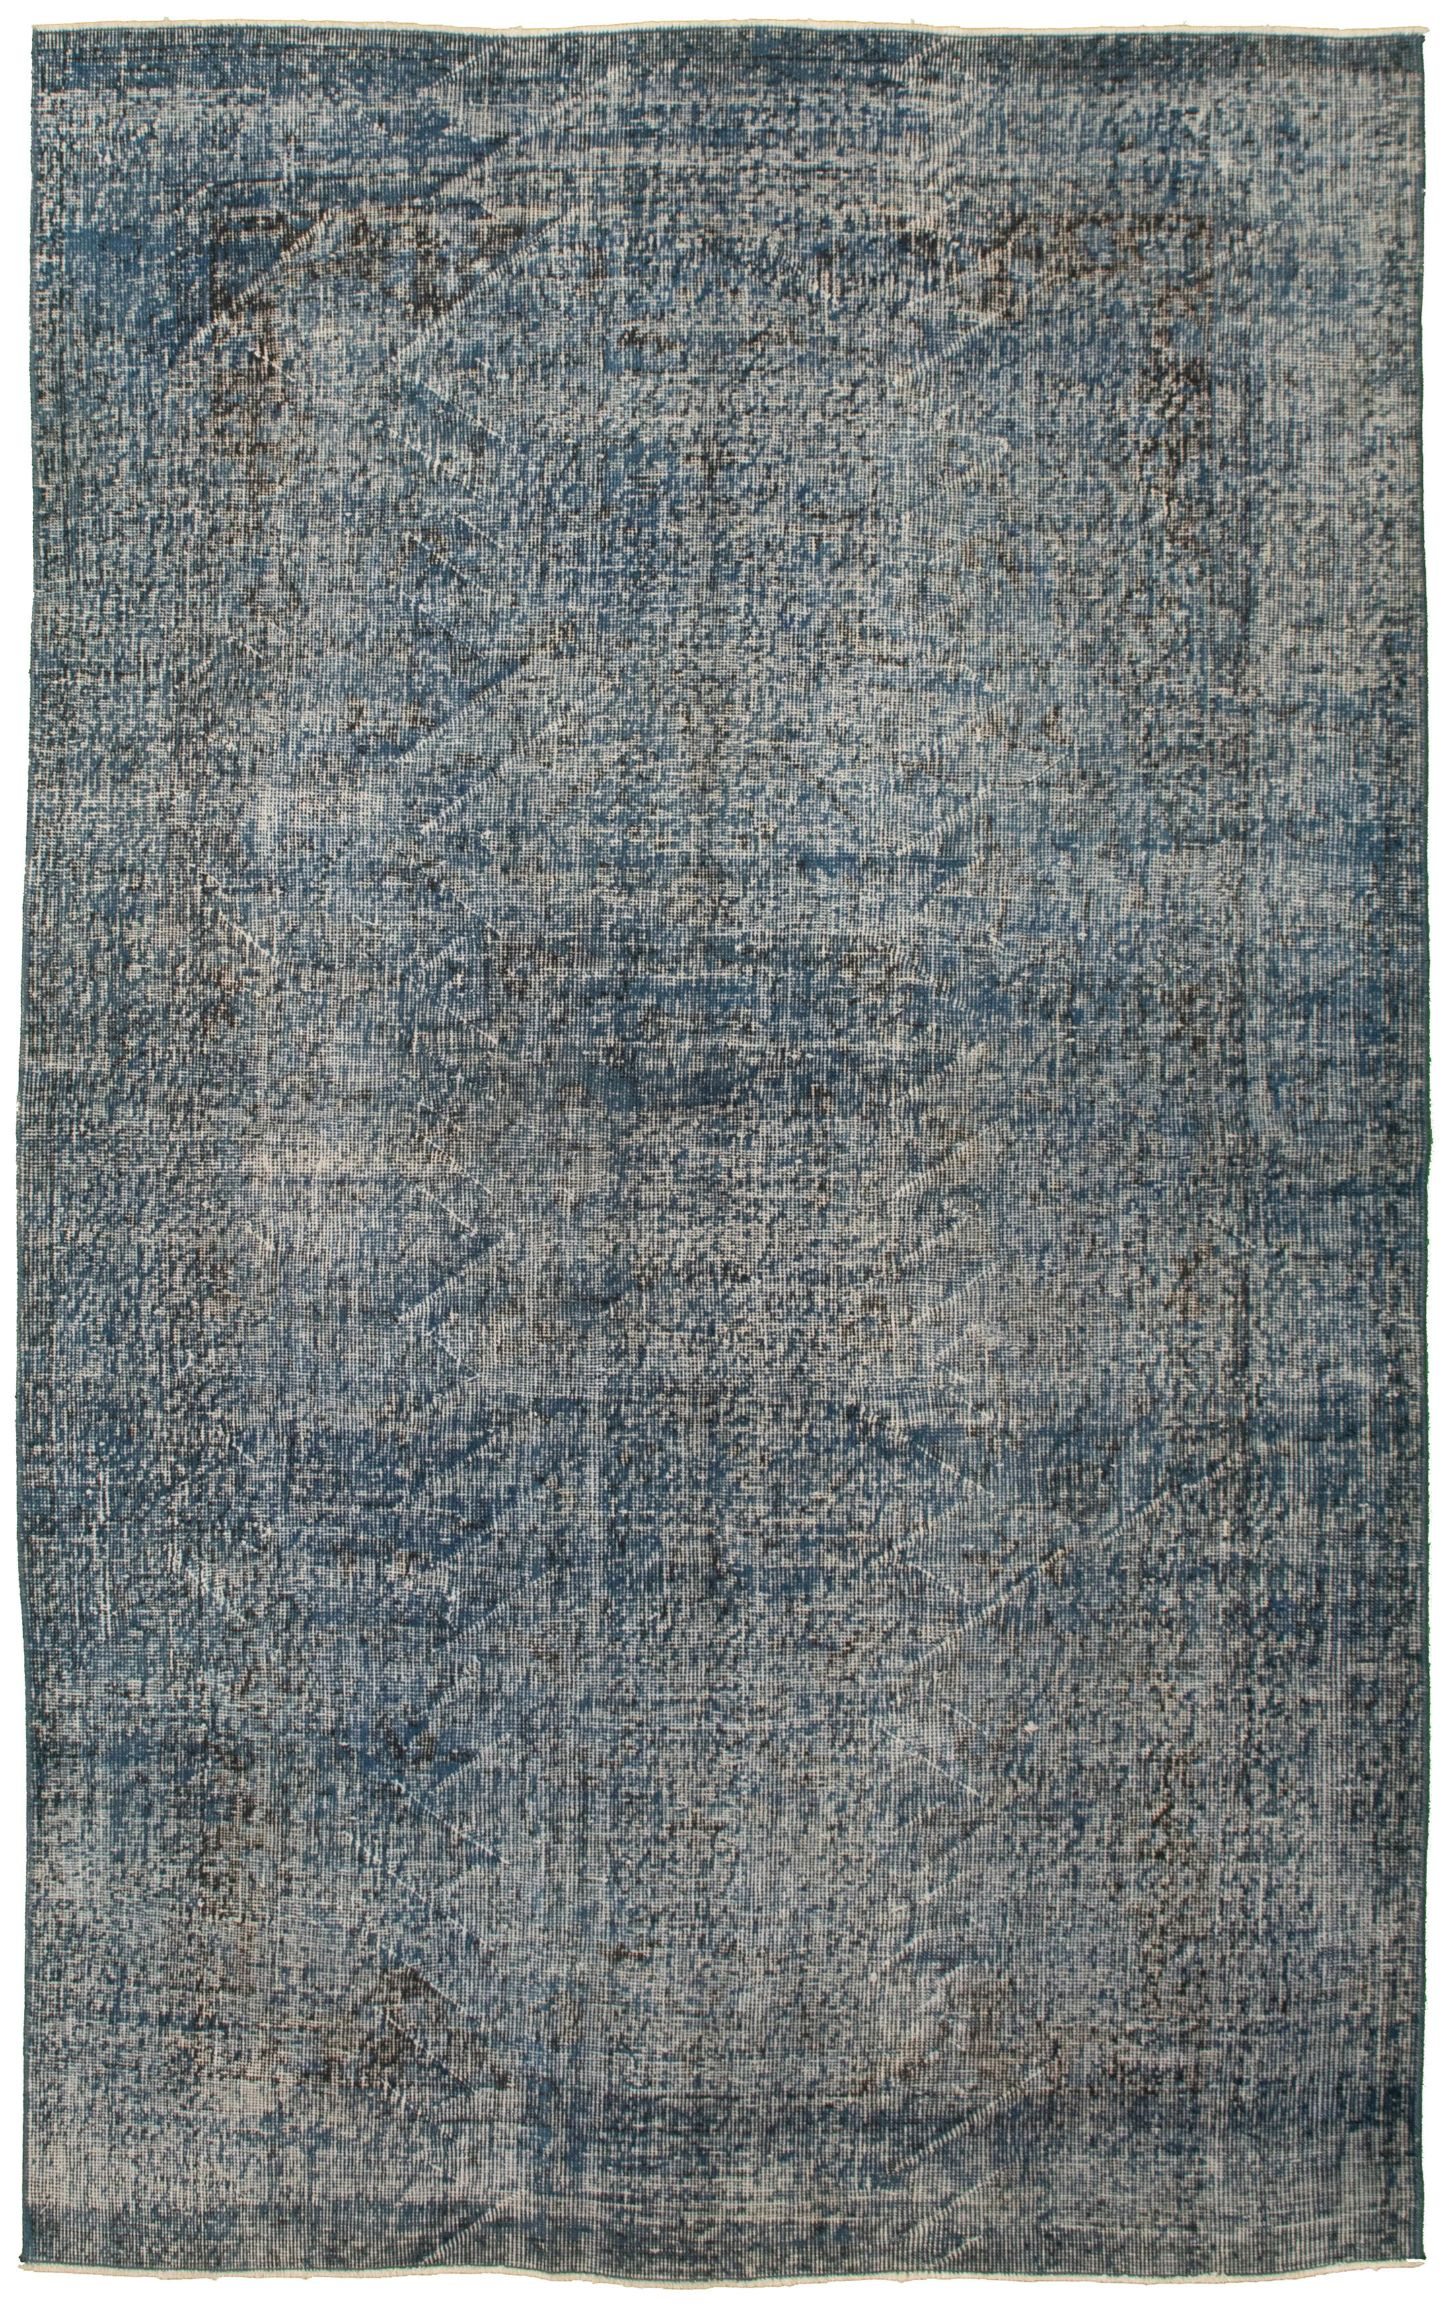 """Hand-knotted Color Transition Blue Wool Rug 5'2"""" x 8'7"""" Size: 5'2"""" x 8'7"""""""